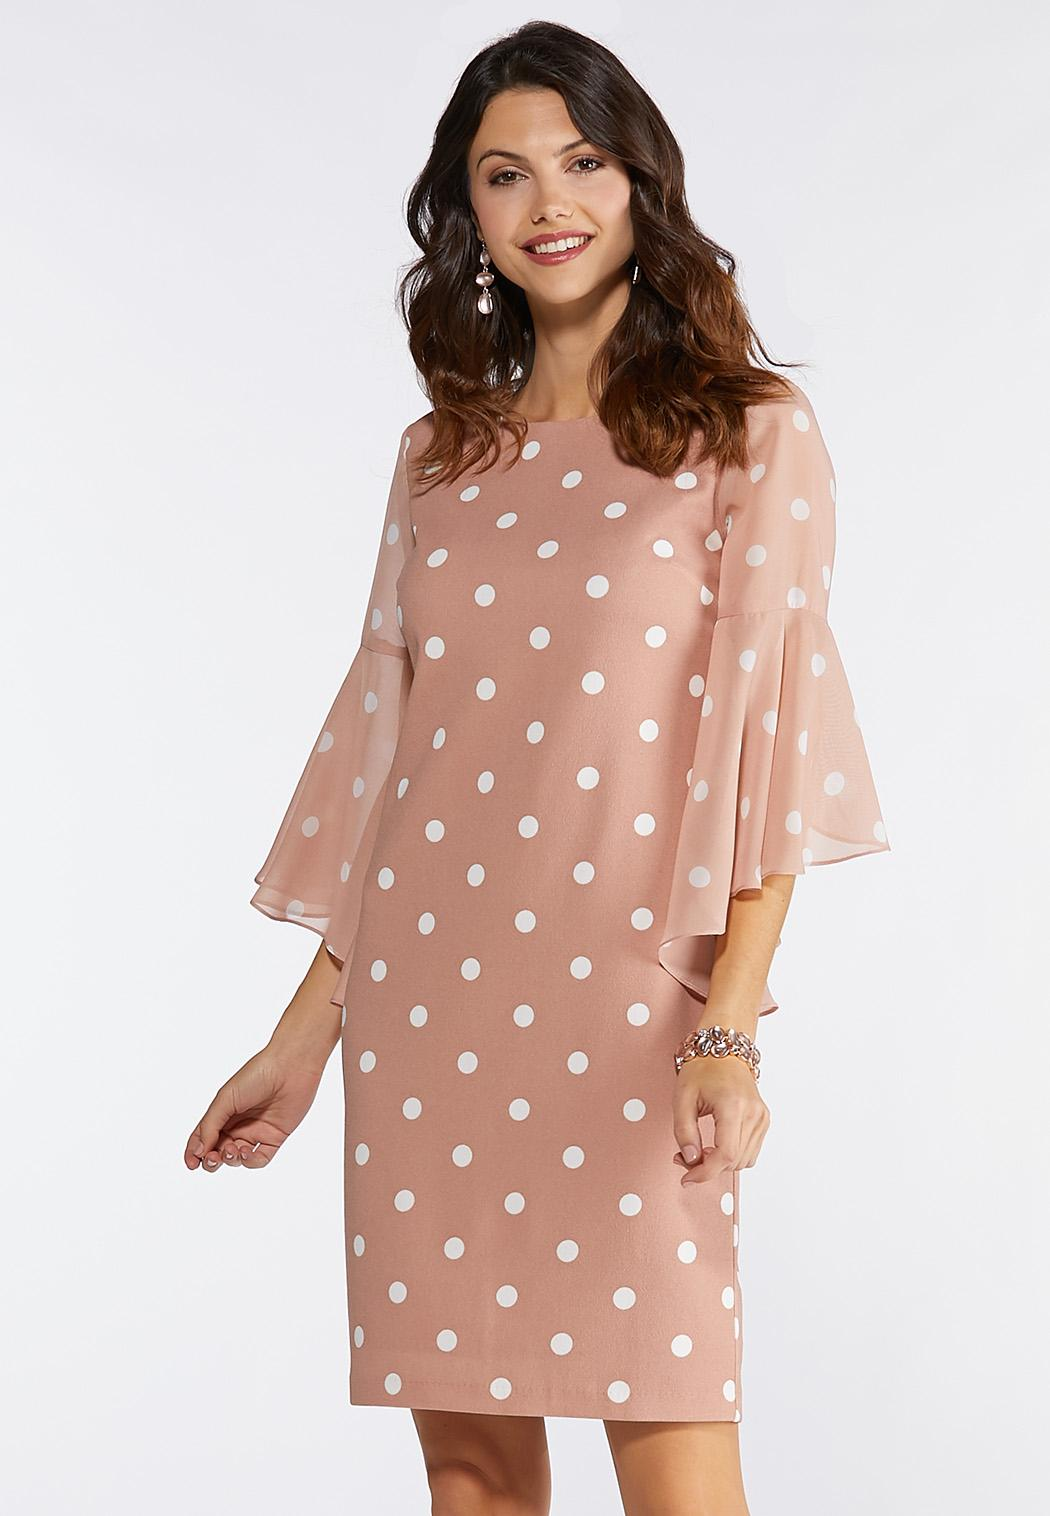 c5ee970b84 Women s Dresses- Fit and Flare